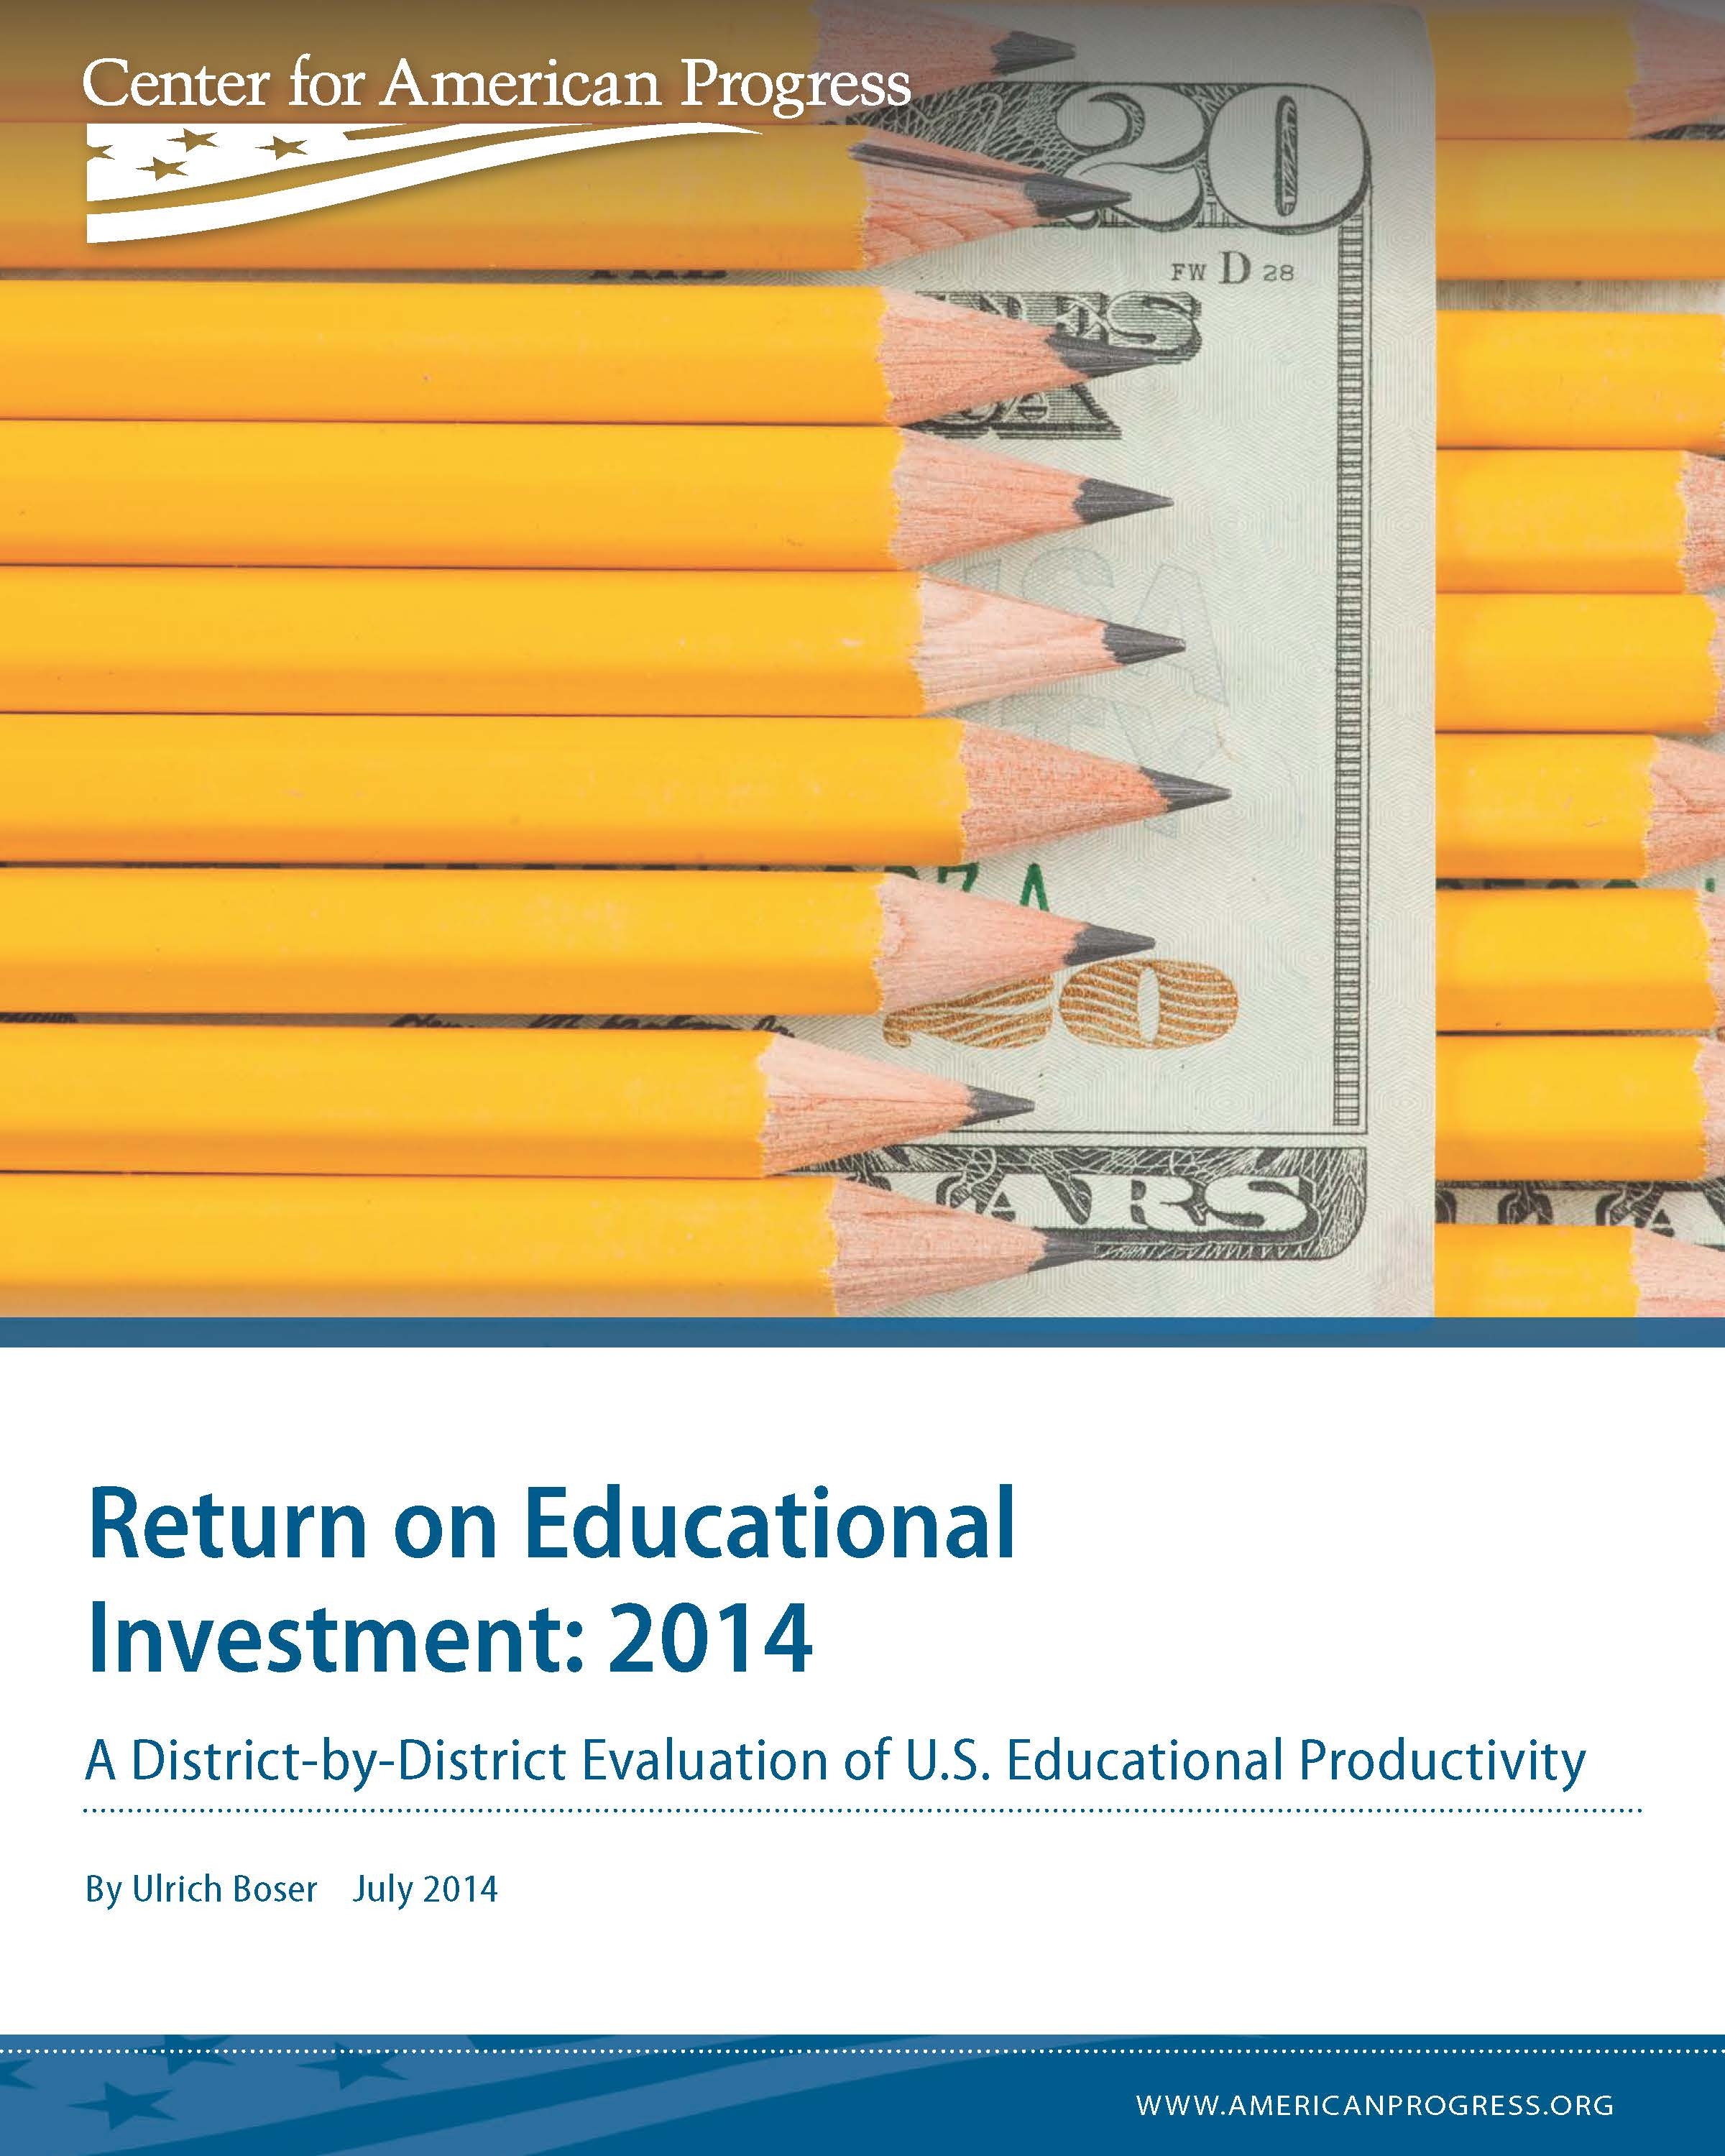 Return on Educational Investment: 2014